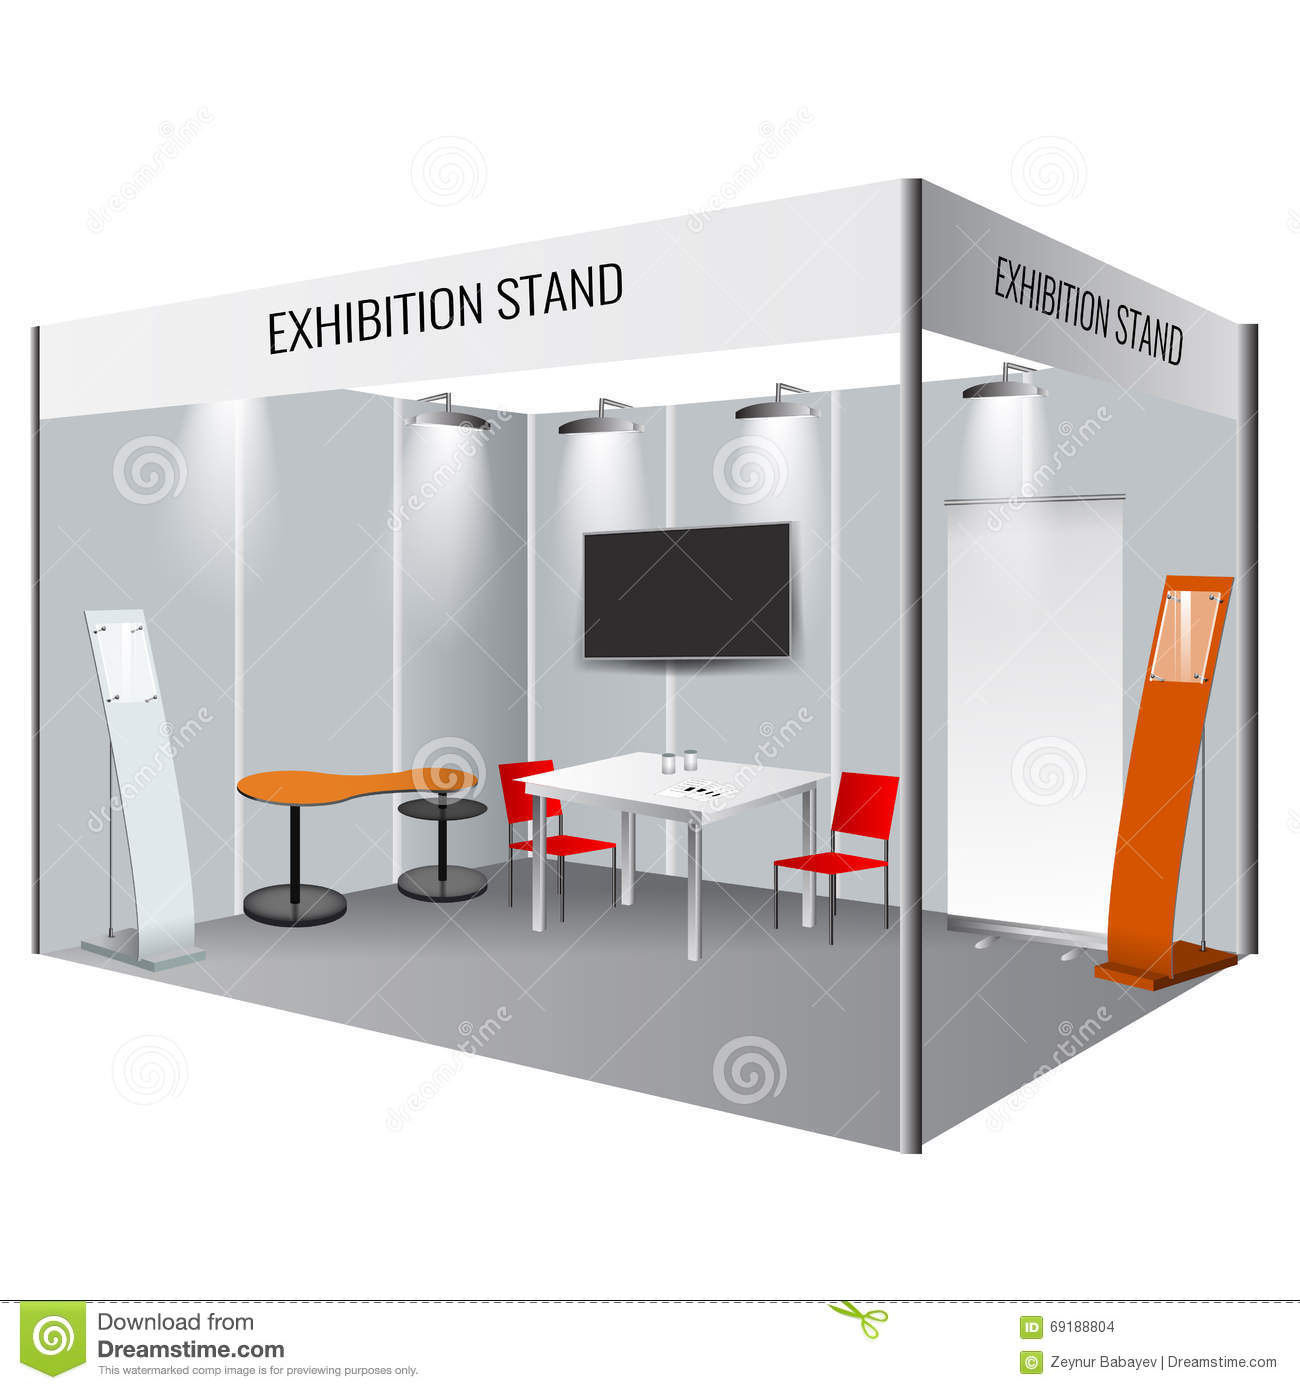 Exhibition Stand Mockup Free Download : Creative exhibition stand design booth template